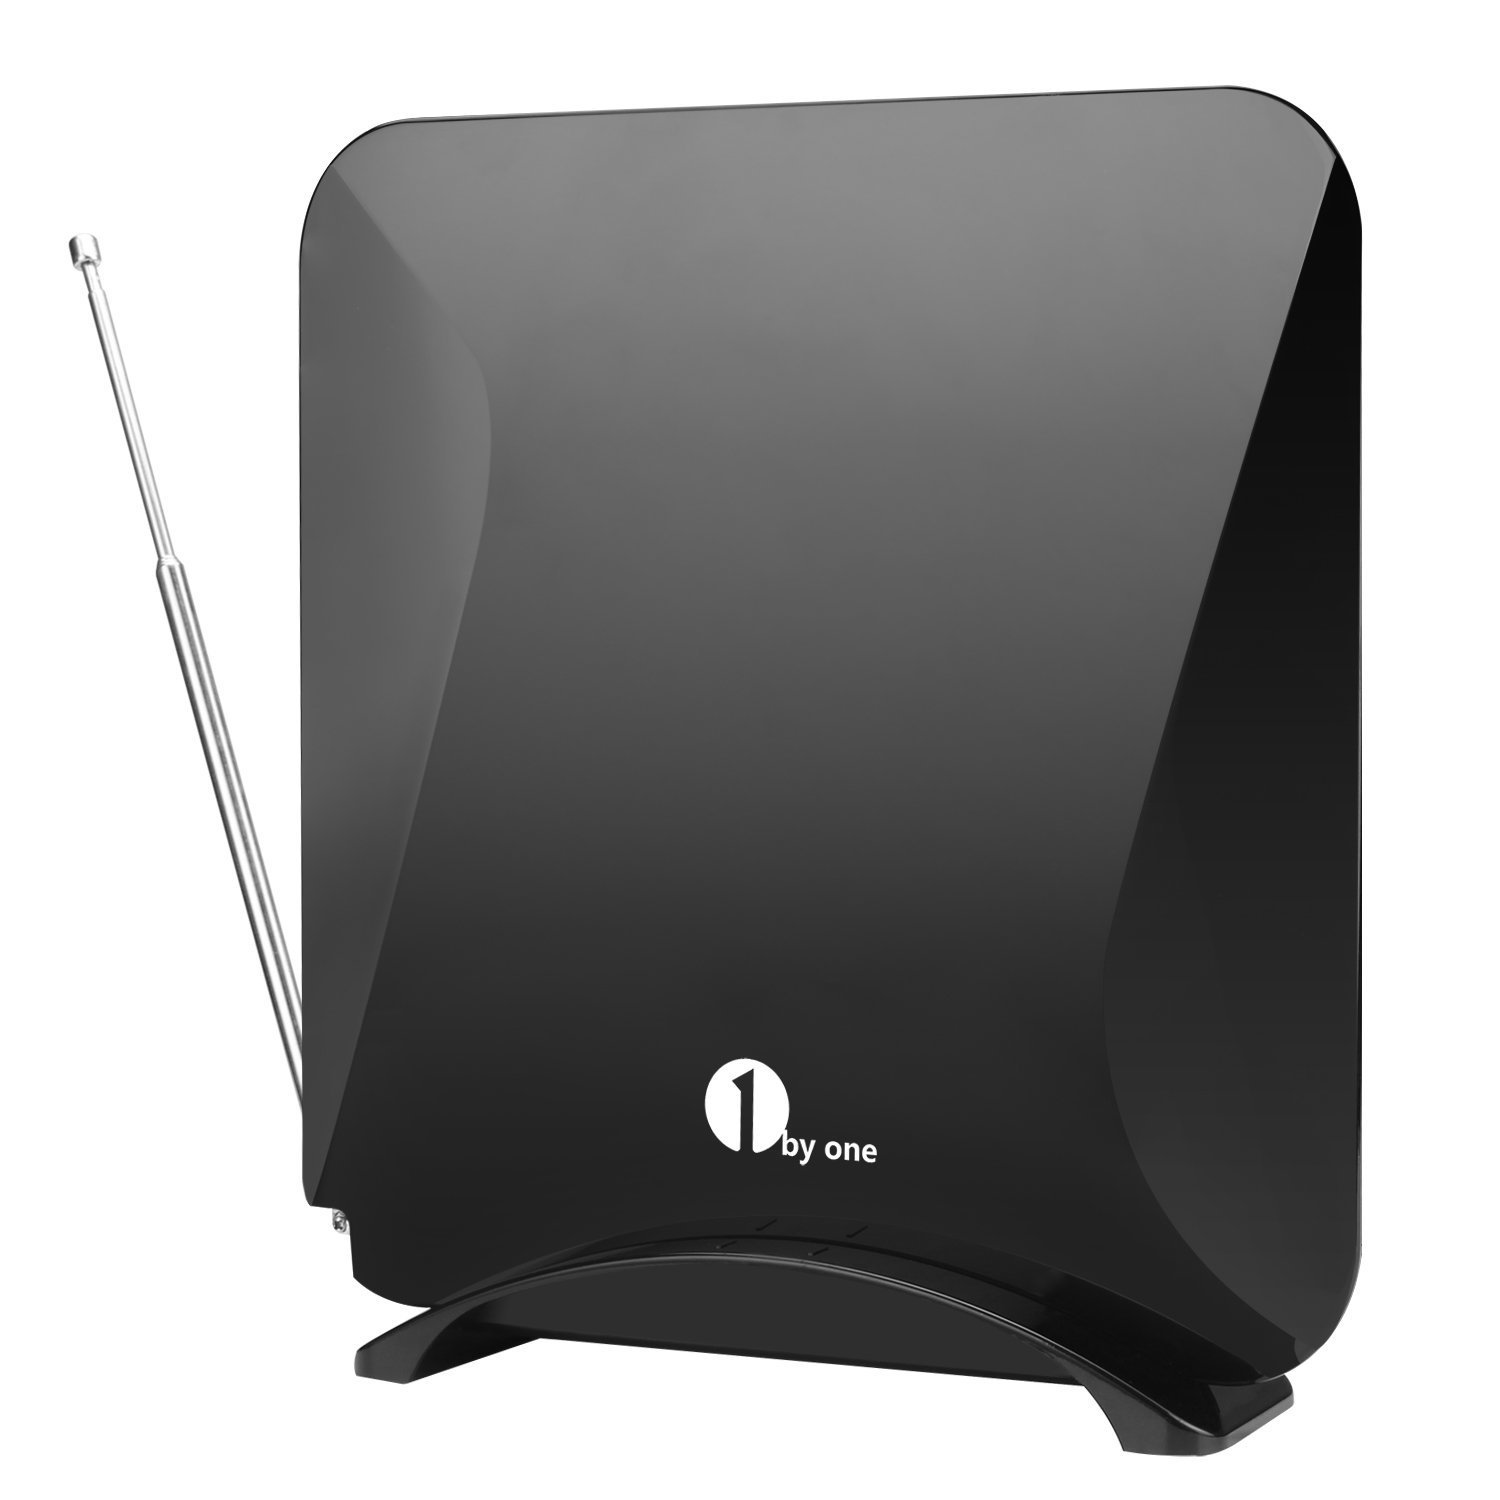 1byone Amplified Indoor HDTV Antenna for UHF/VHF / FM with Stand, 40 Miles Range with Detachable 20dB Amplifier USB Power Supply, 10 Feet High Performance Cable